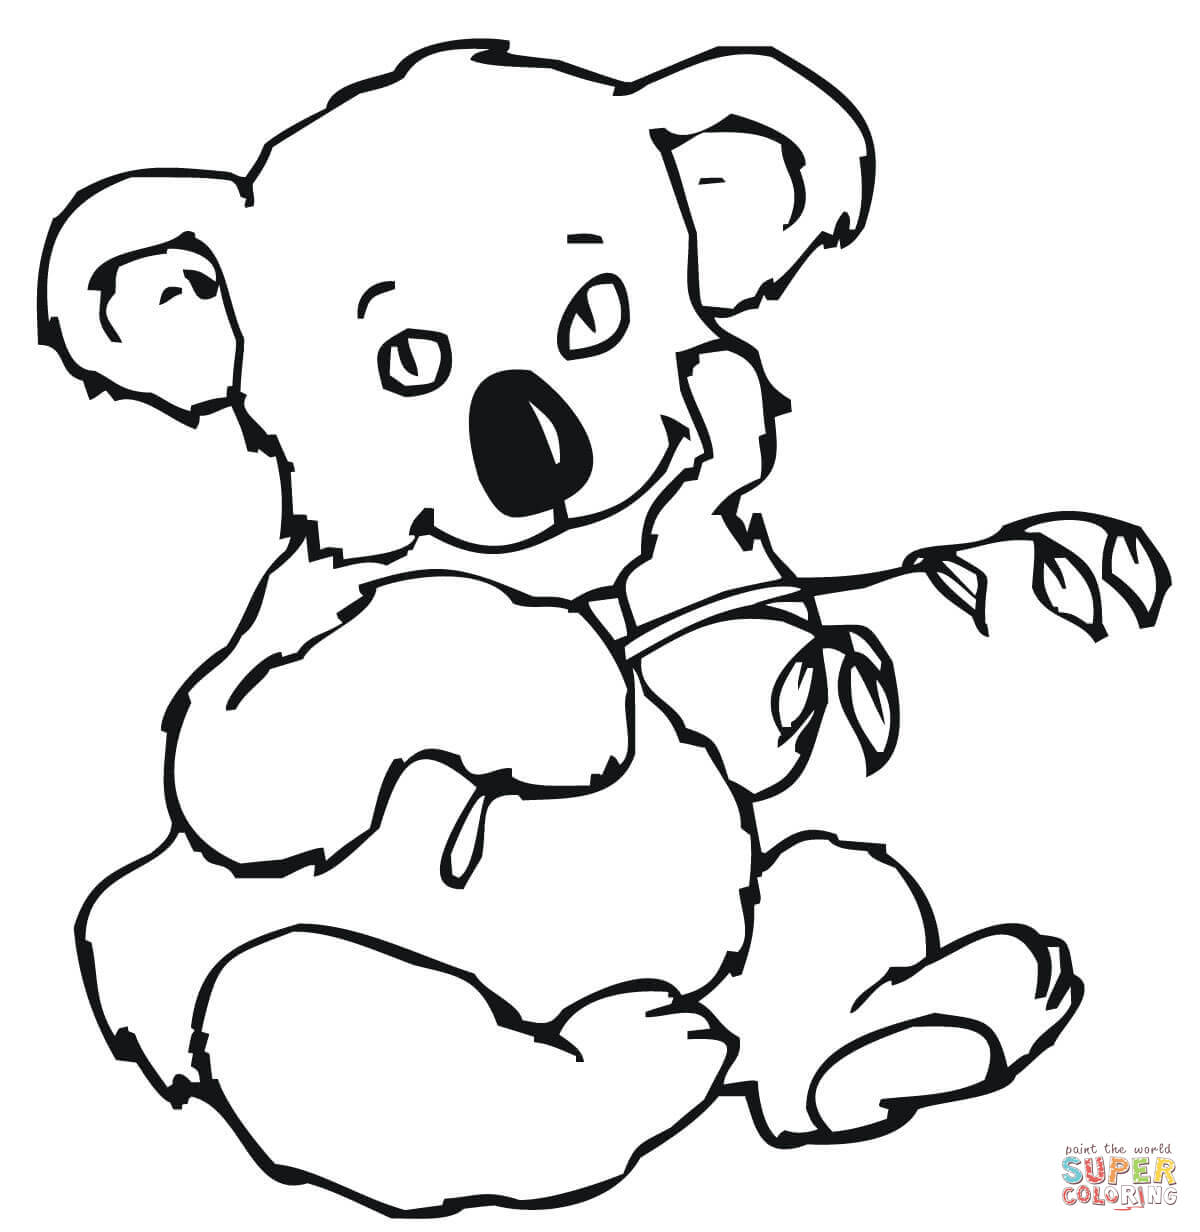 Cute Koala With Eucalyptus Leaves Coloring Page